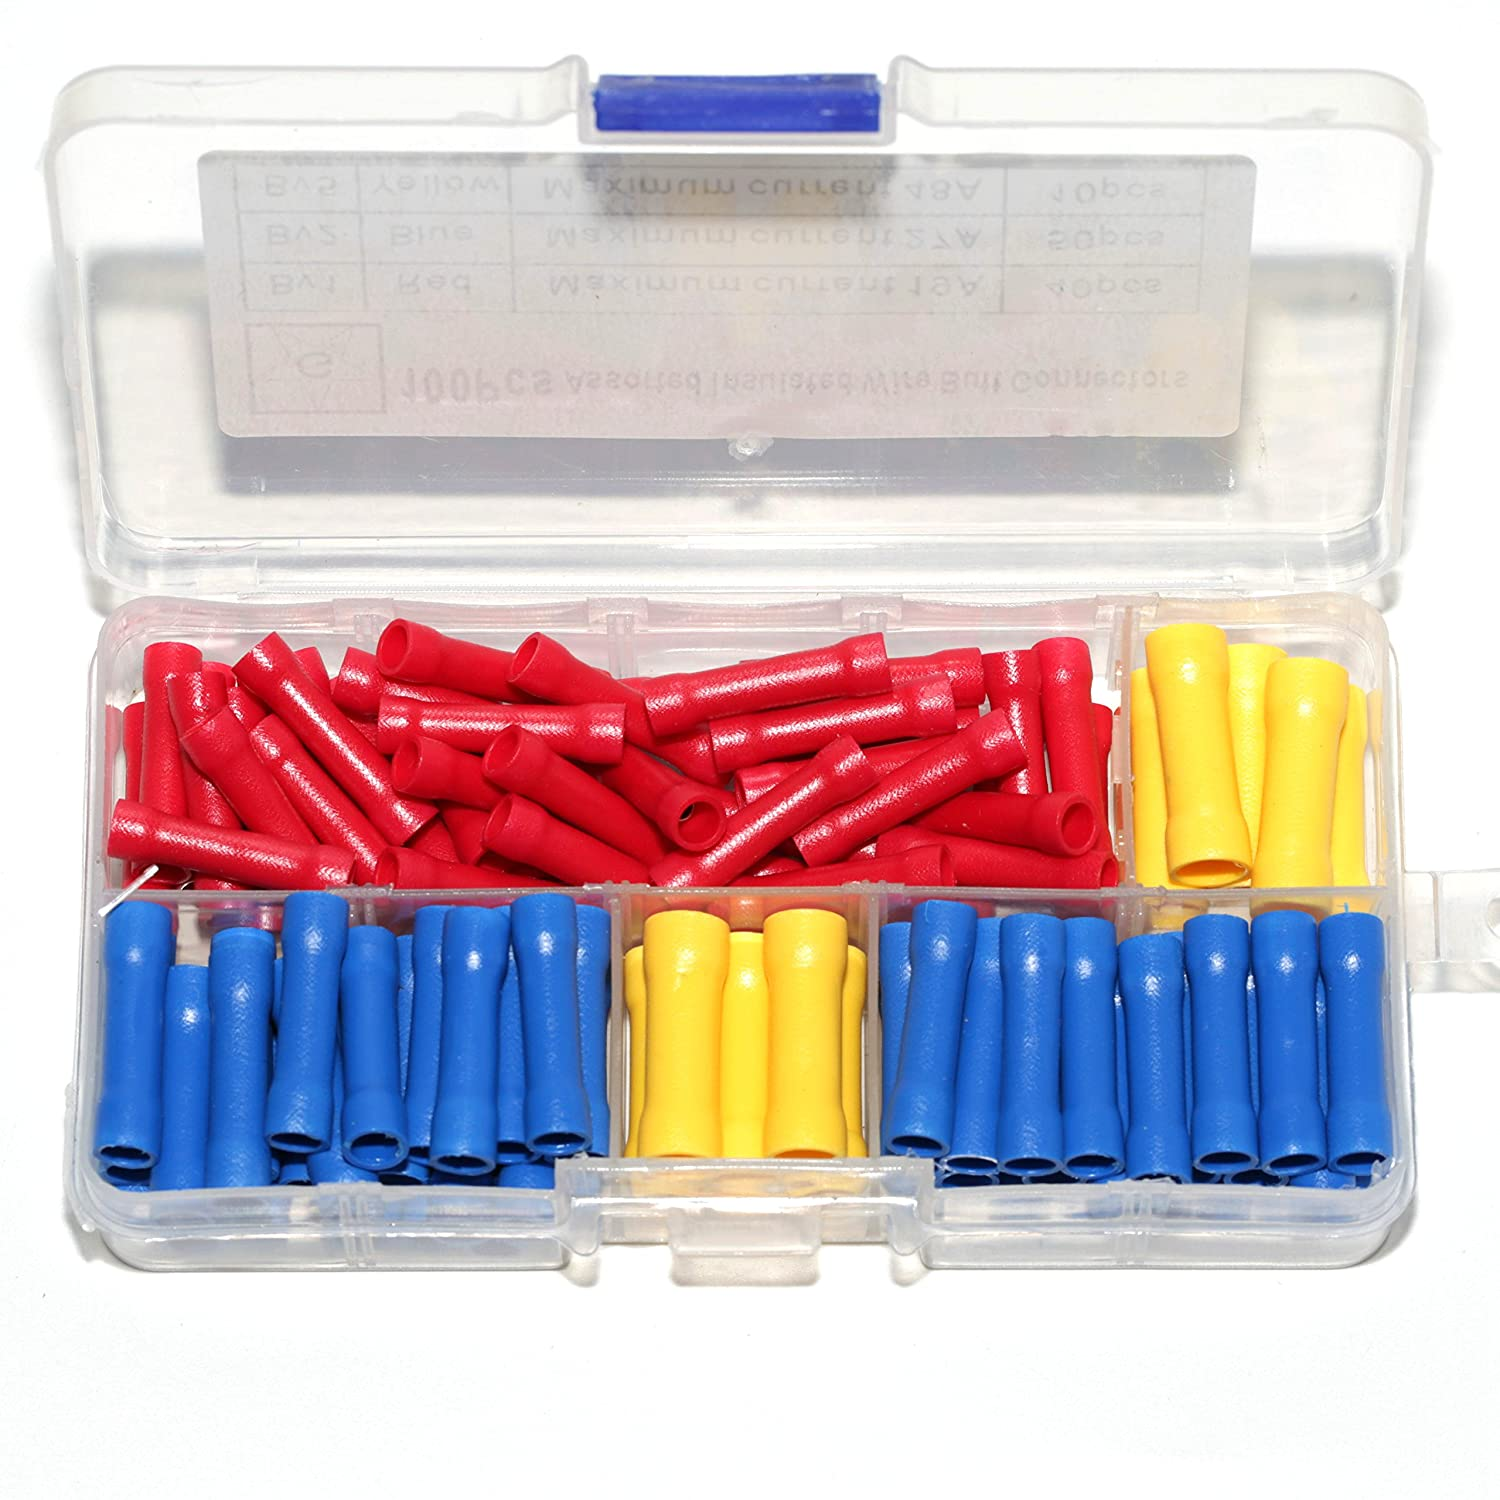 Ginsco 100pcs 10-22 AWG Assorted Insulated Straight Wire Butt Connector Electrical Crimp Terminal Connectors Generic